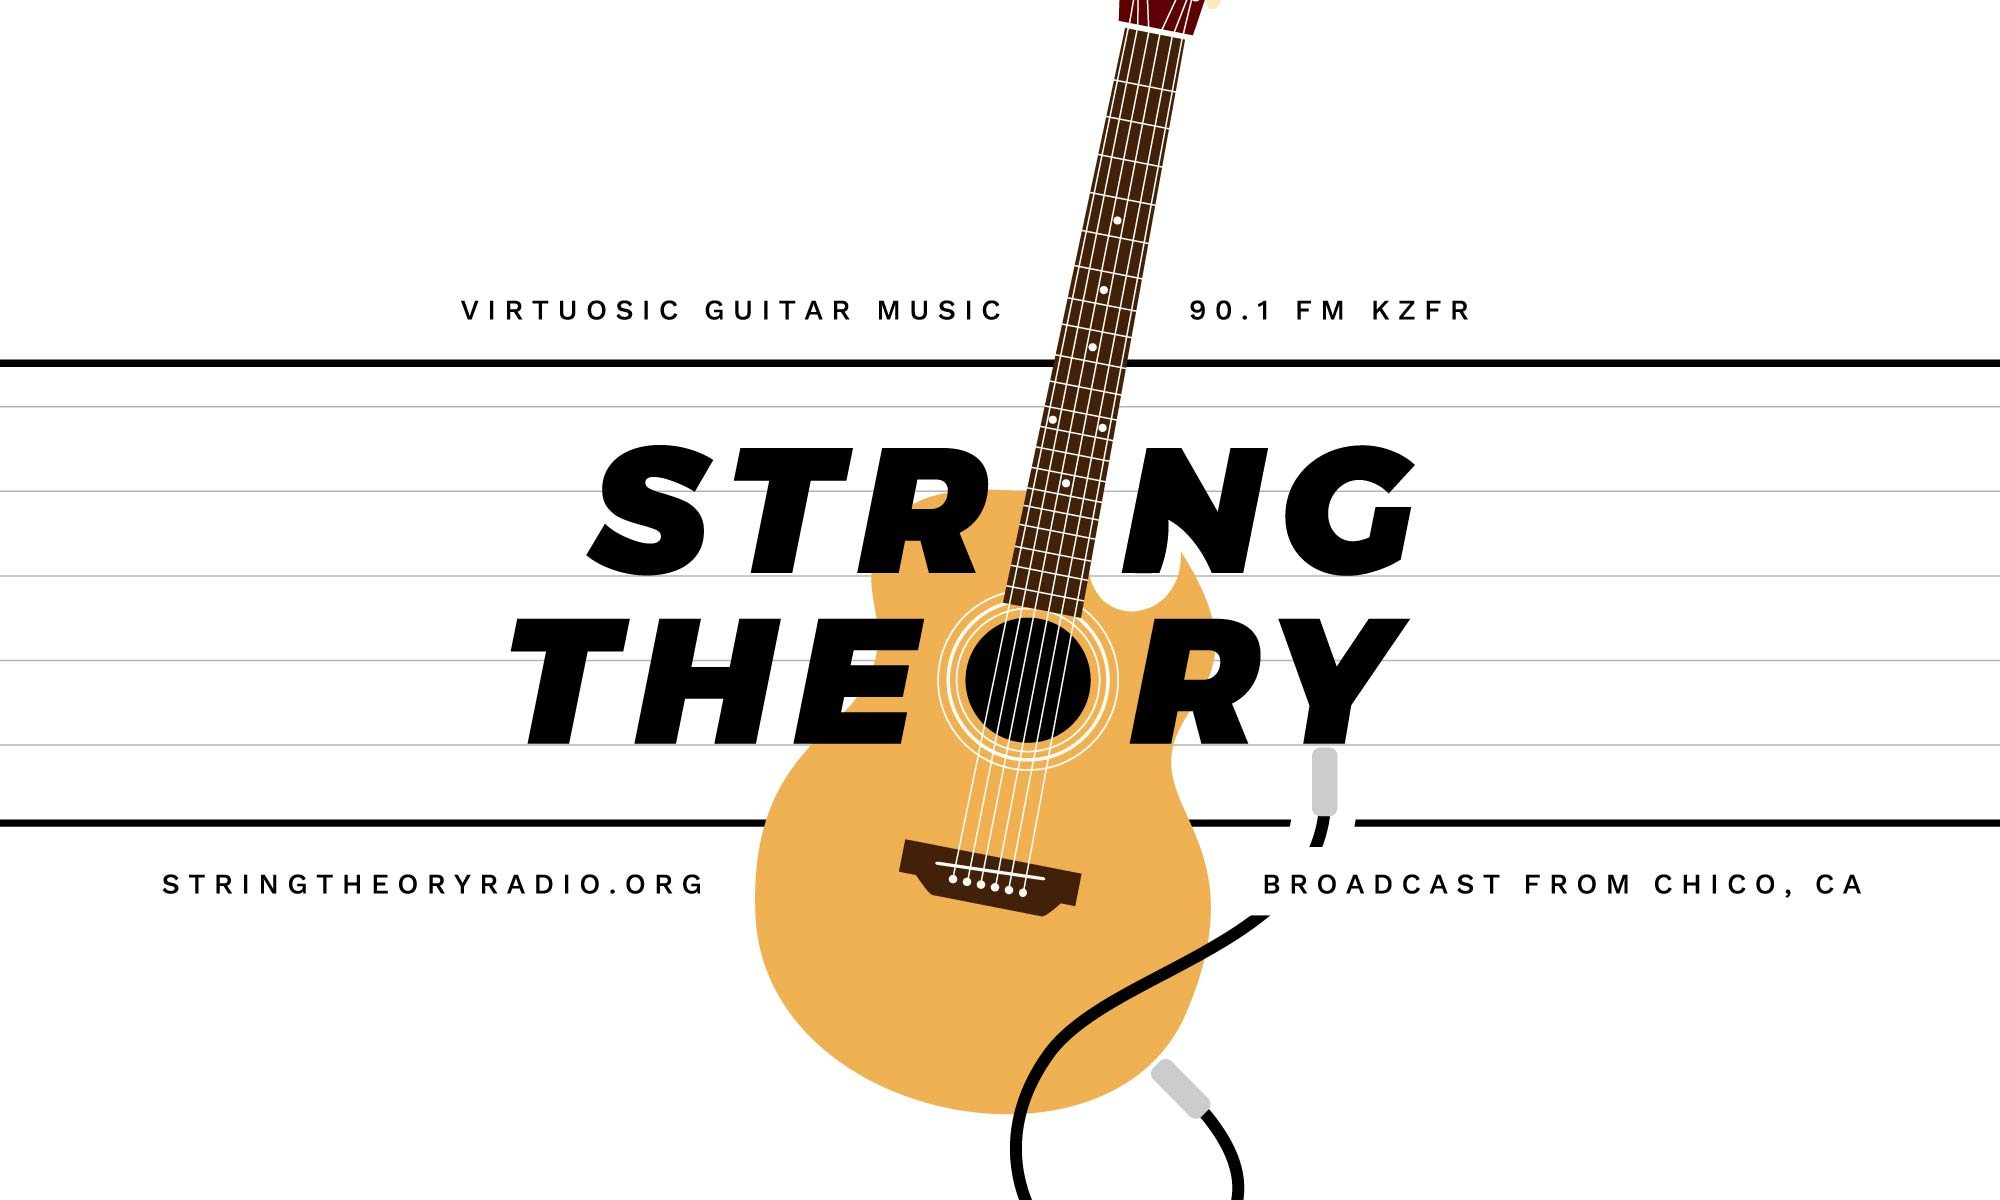 String Theory Radio